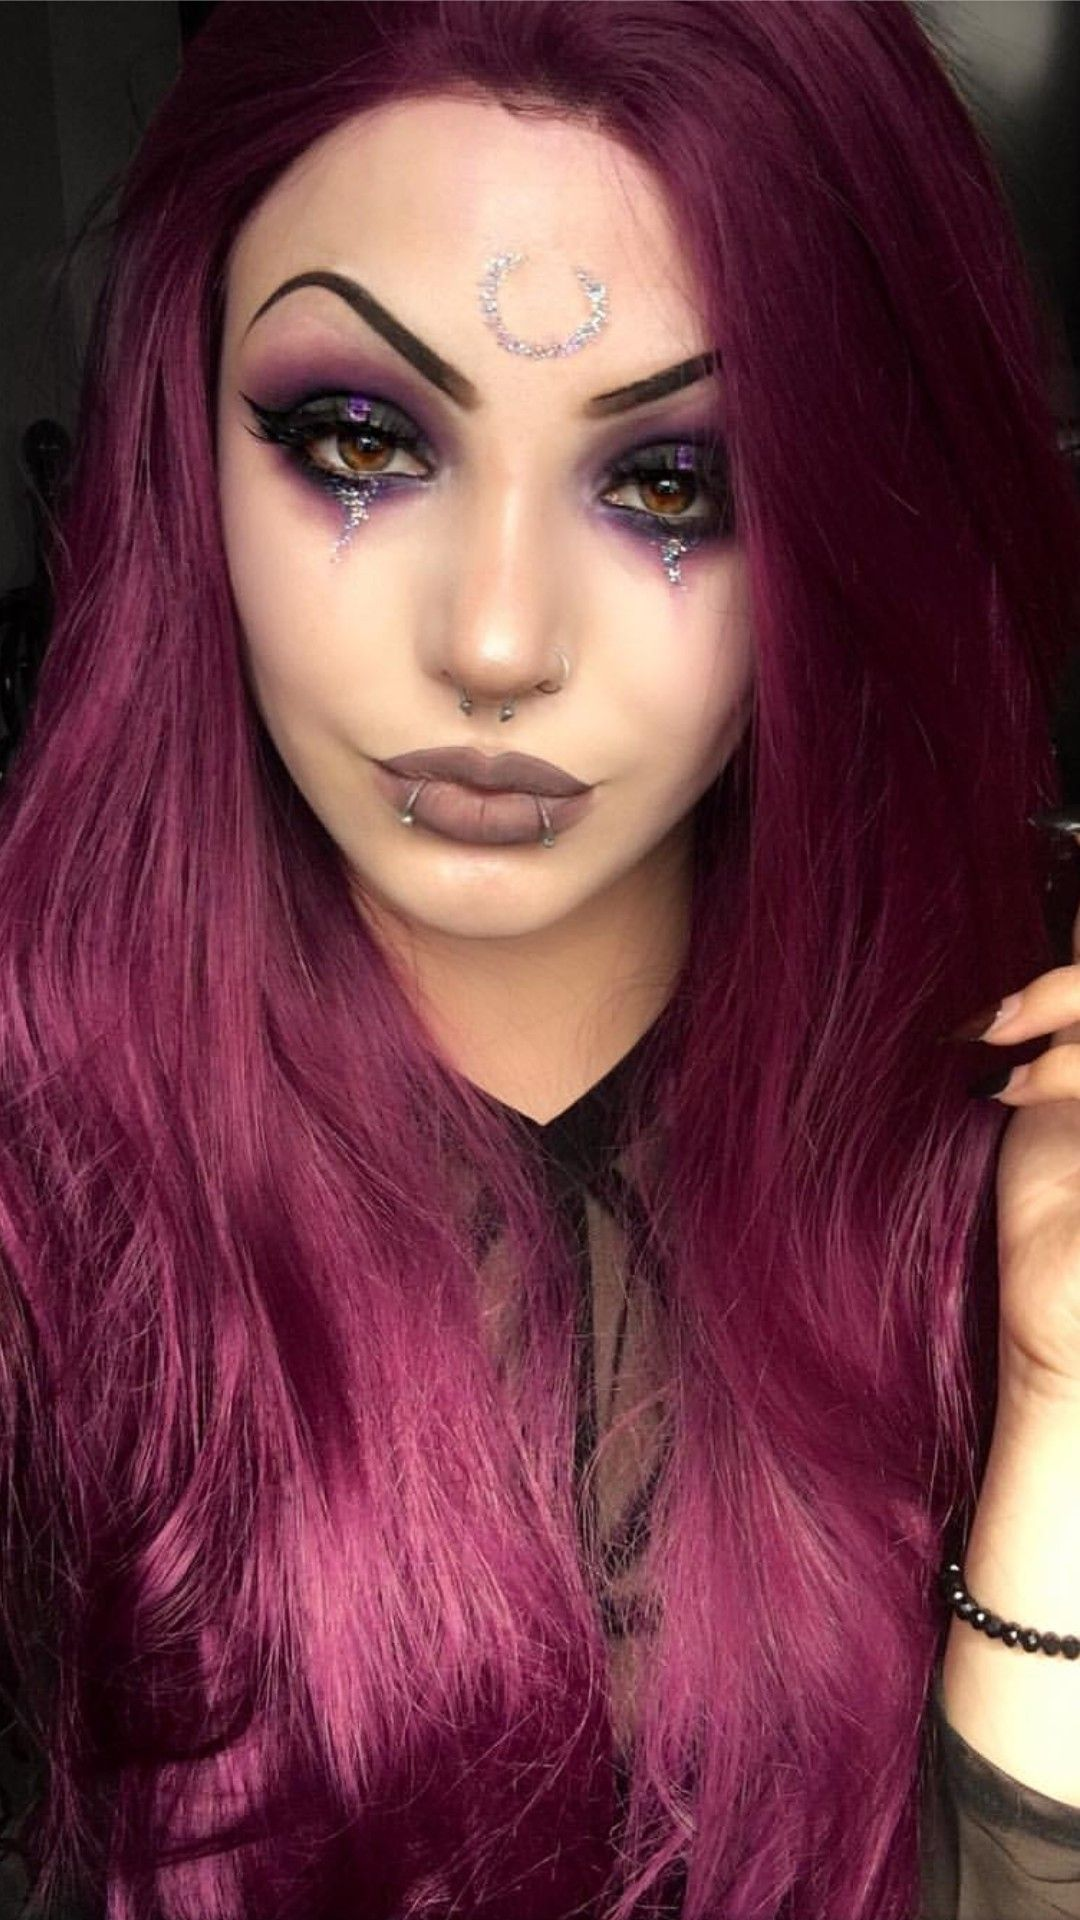 Pin by Sarah Torres on Makeup Ideas Gothic in 2020